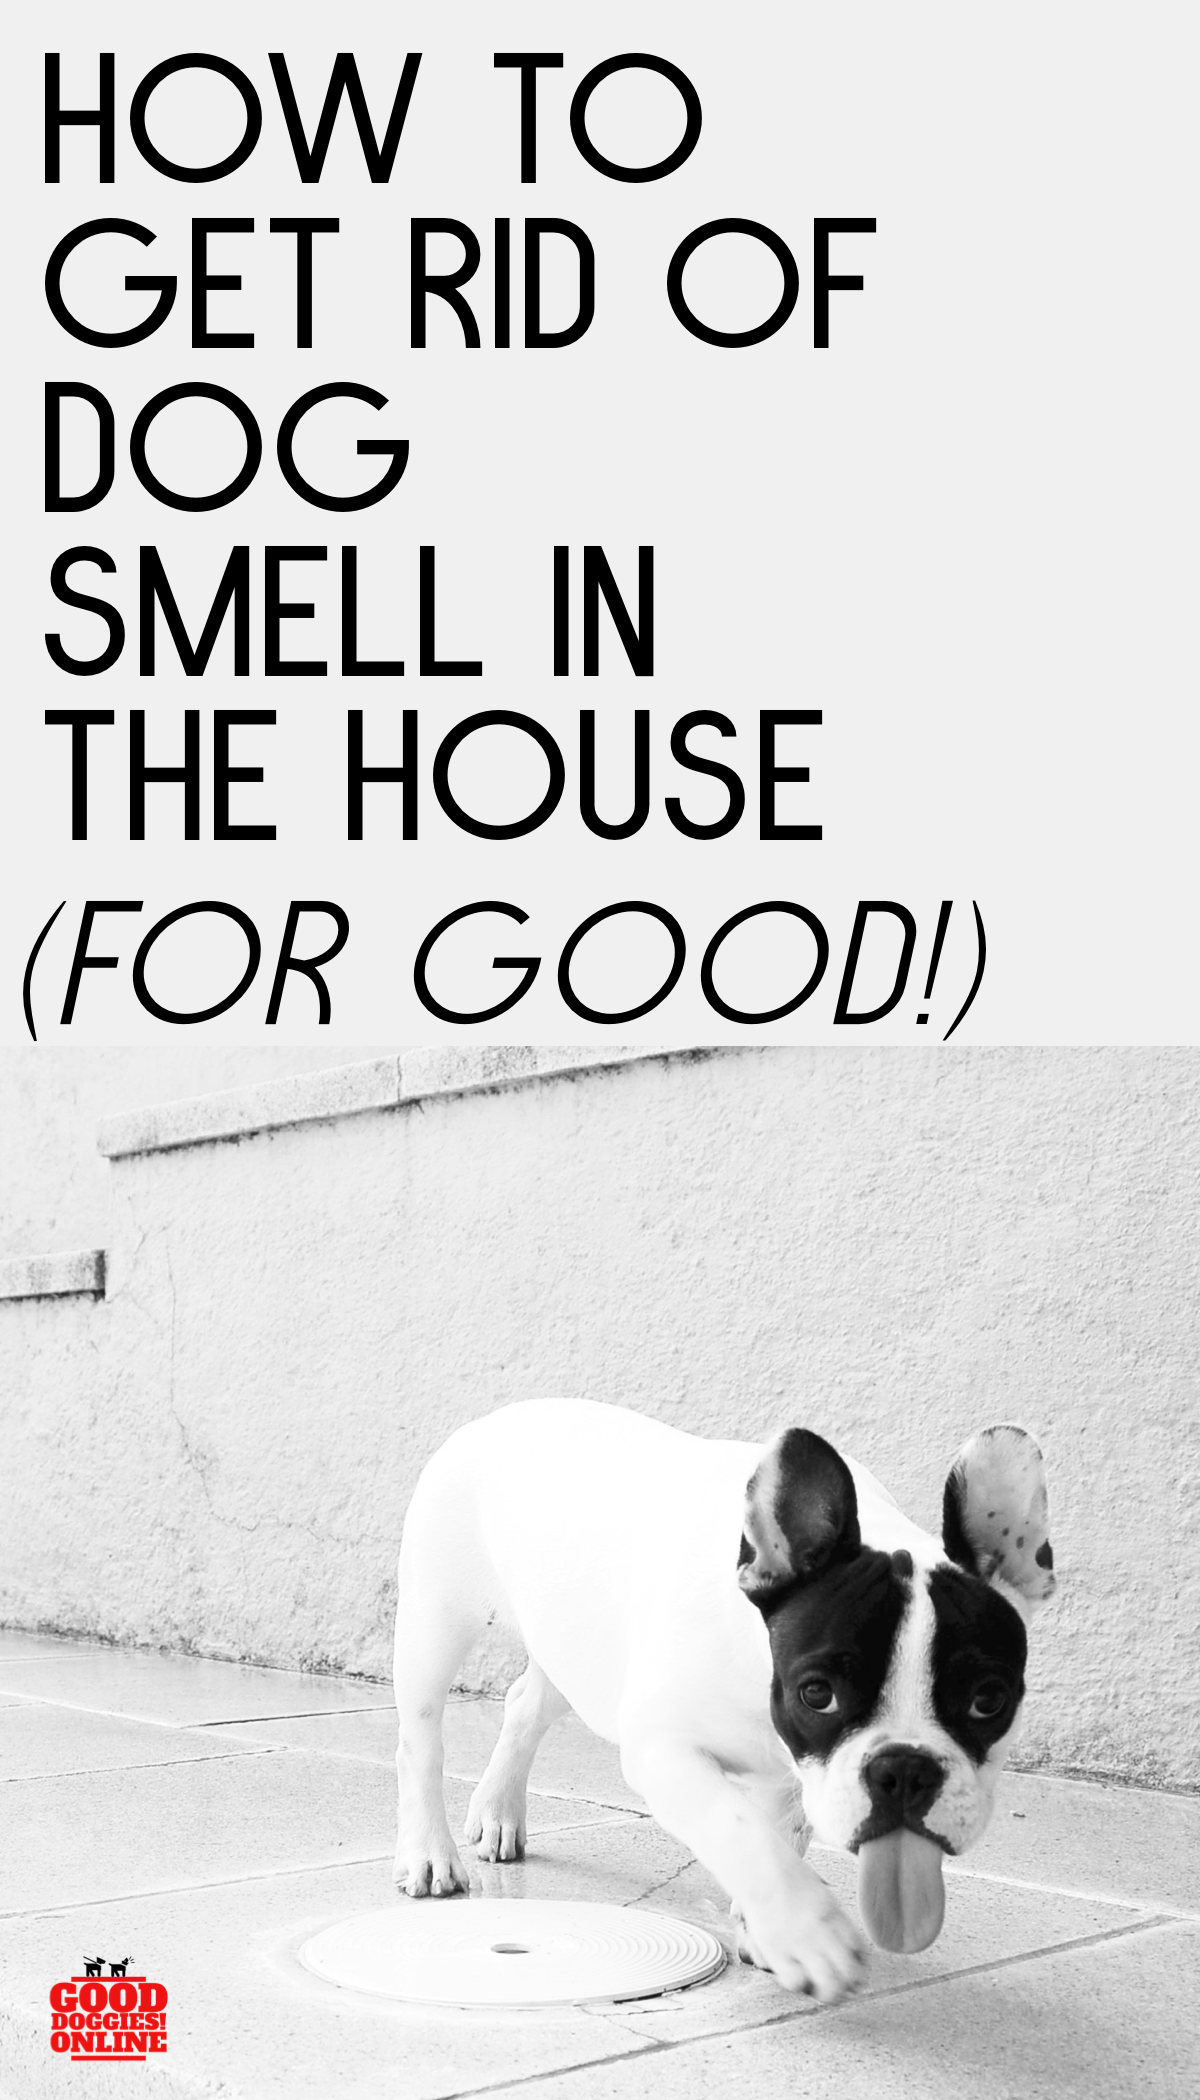 How to Get Rid of Dog Smell in the House Good Doggies